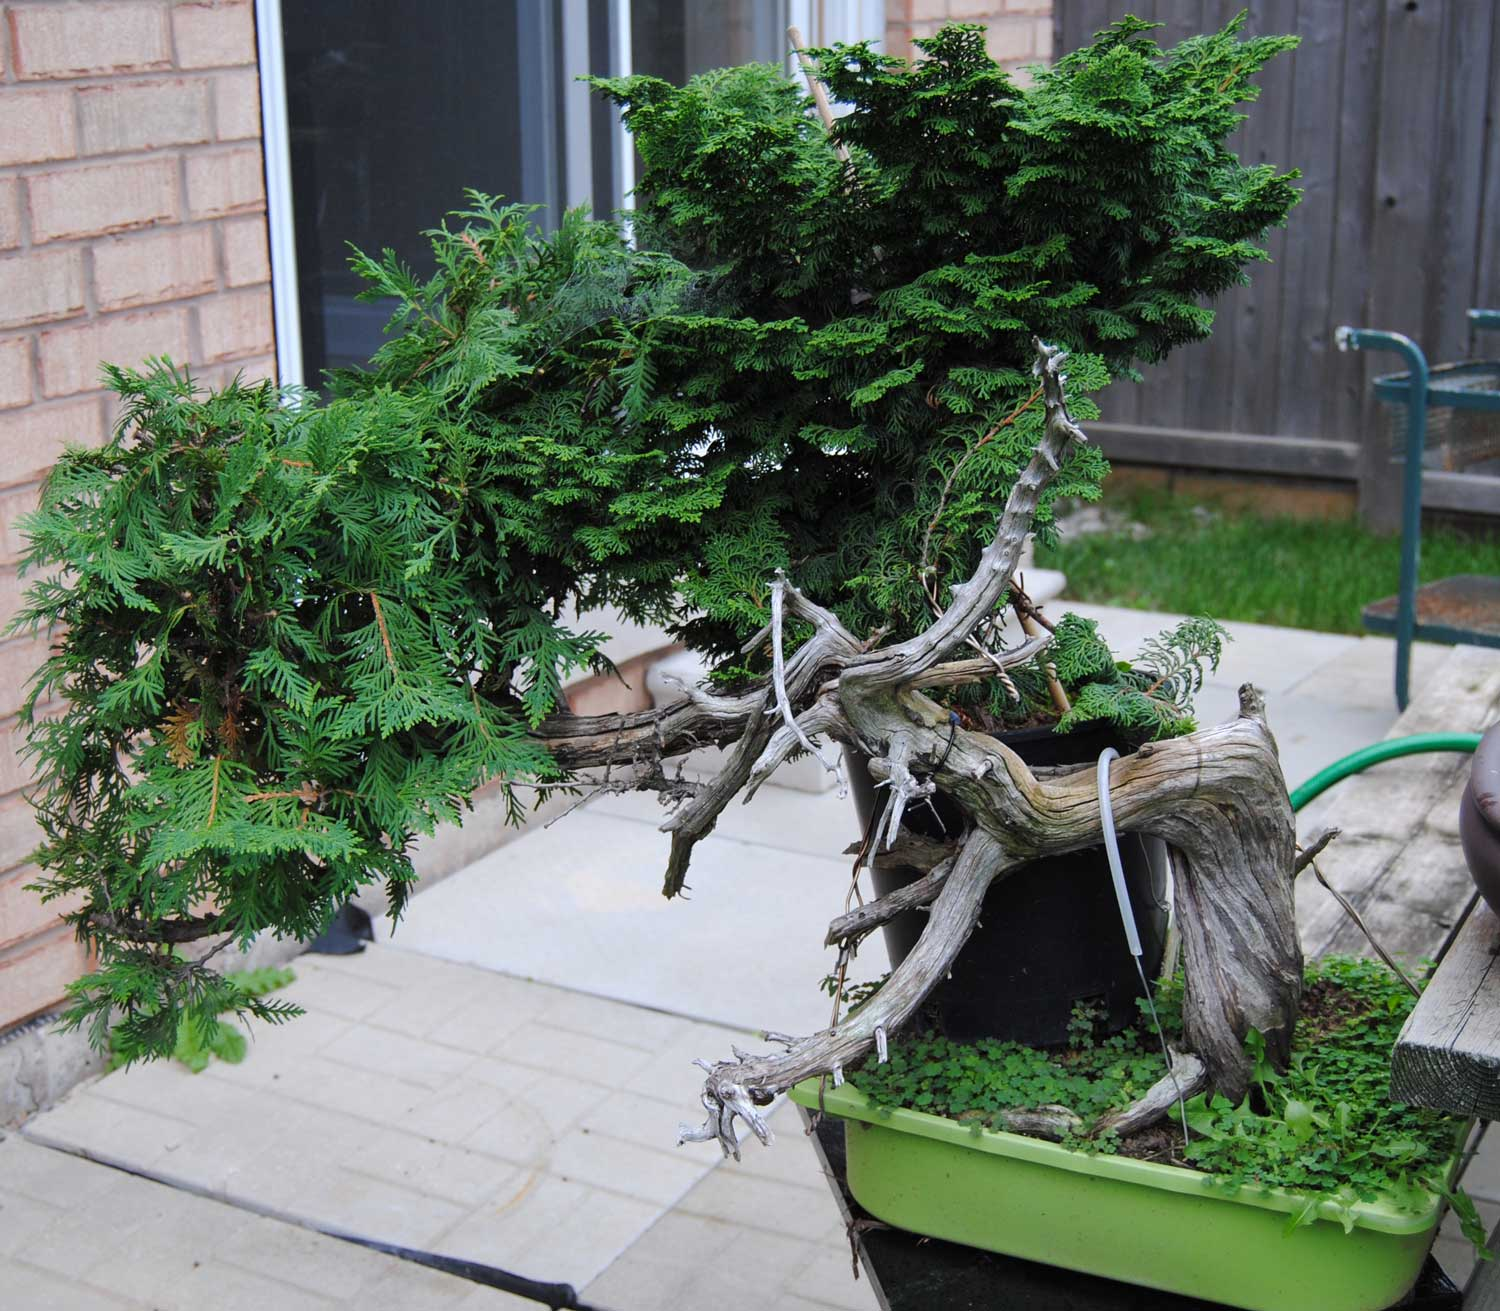 I'm not sure if this tree is even worth all the trouble. Sure, it will be nice if I can make it a bonsai, but this grafting project now seems more about me proving to myself that it can be done.